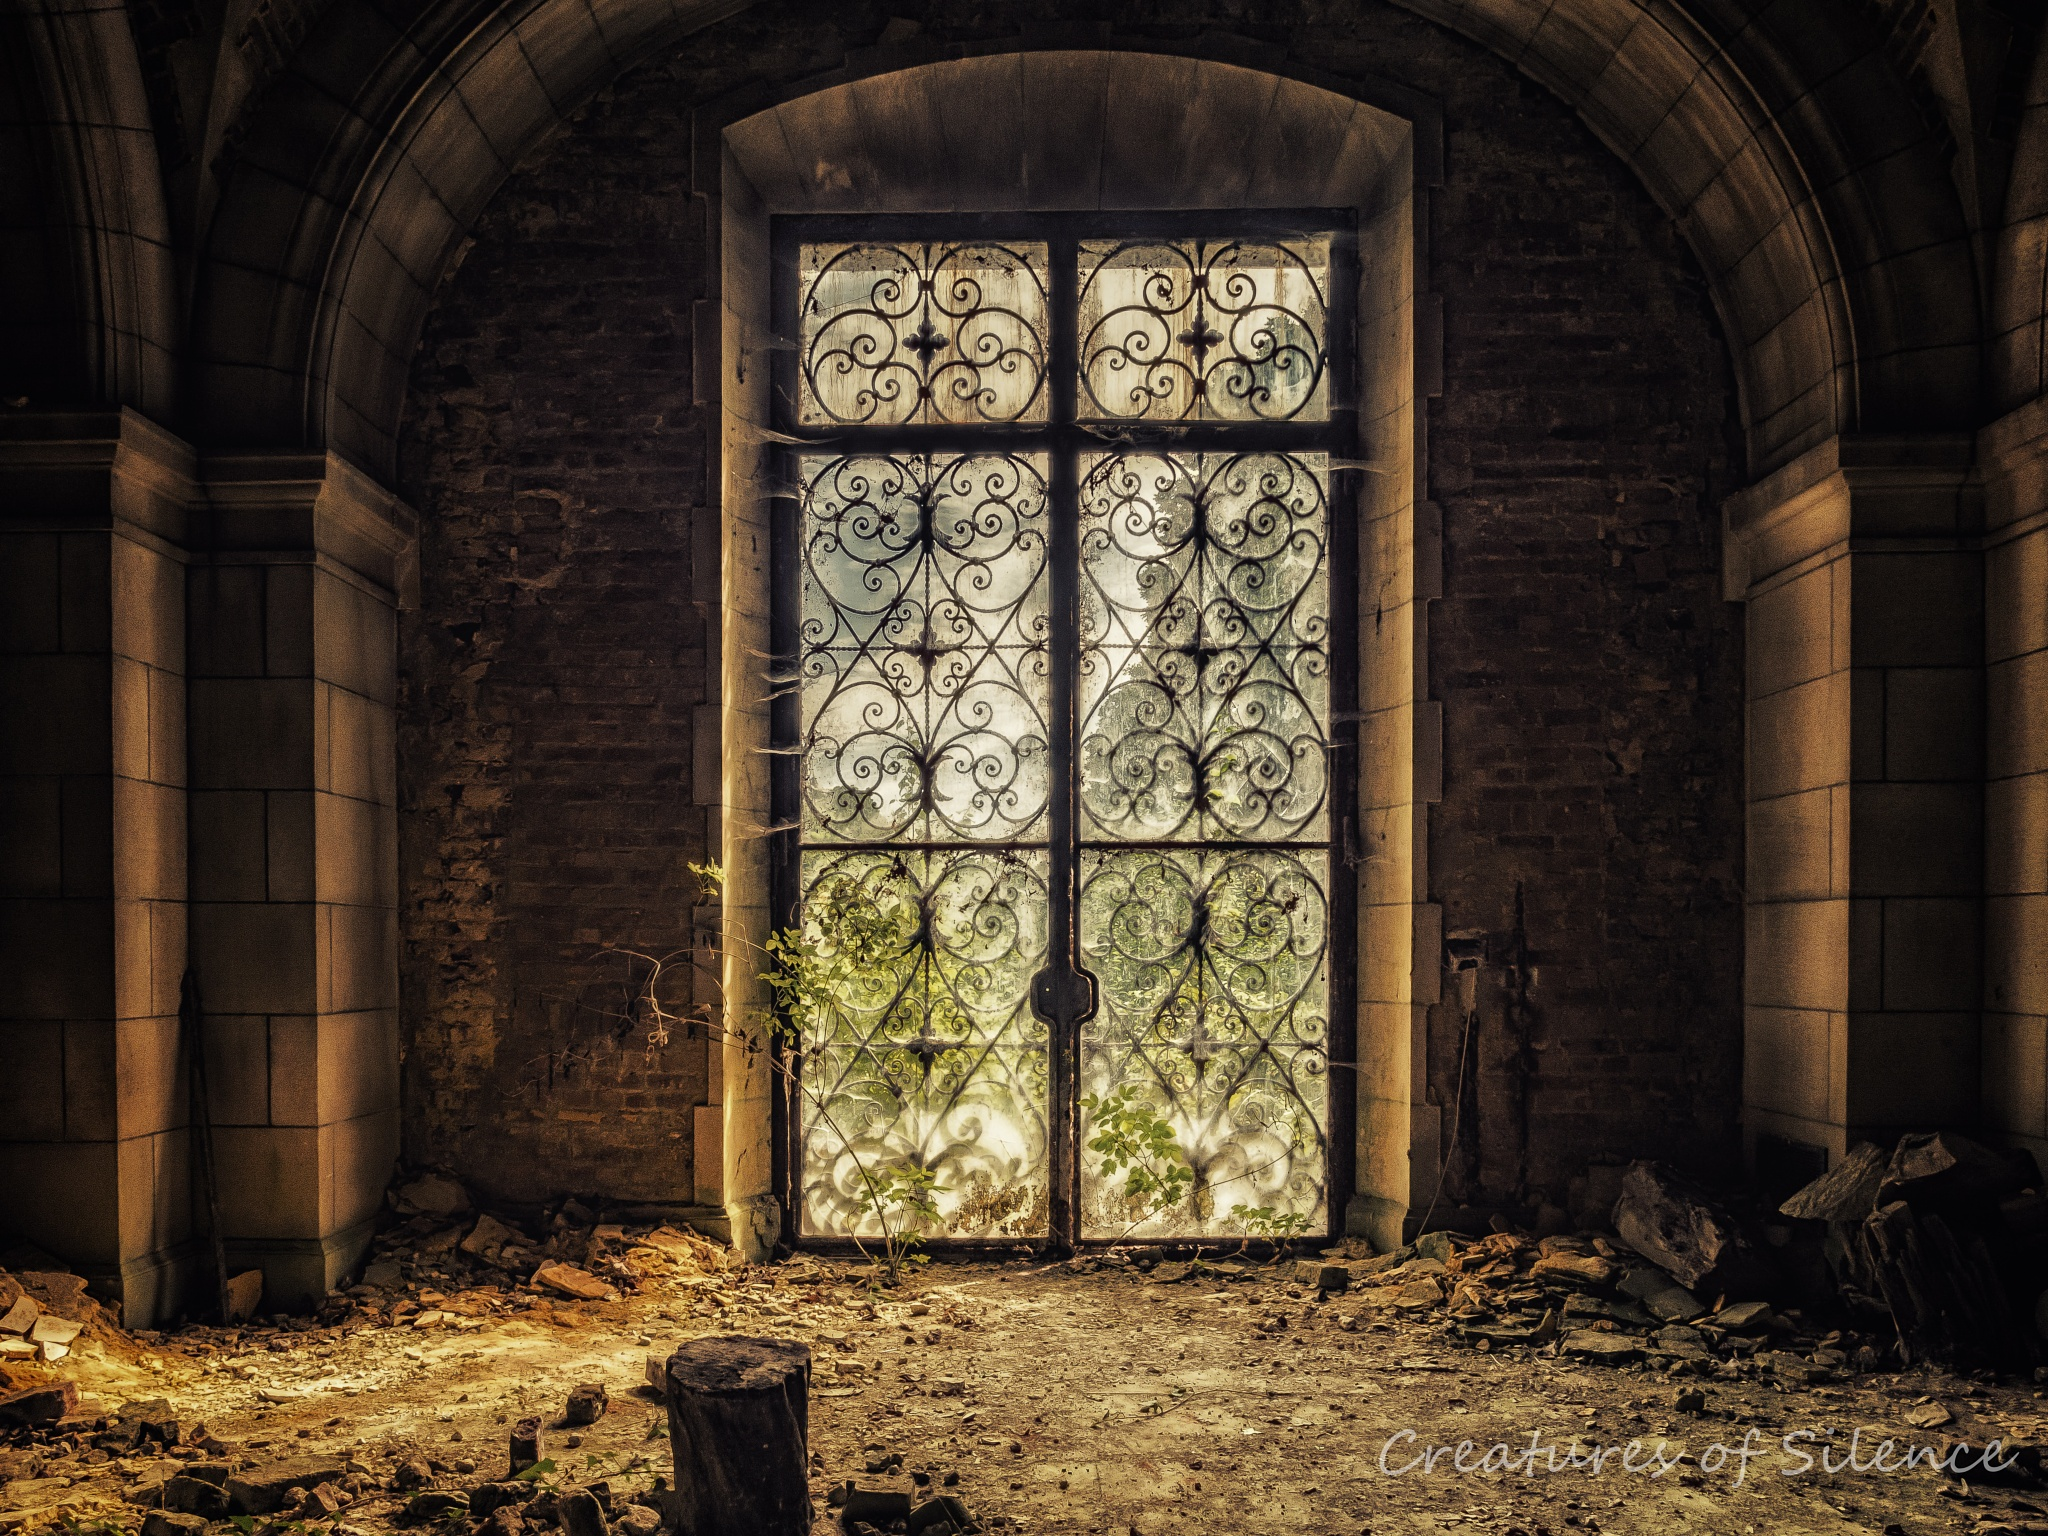 Fairytales come true by Harald Buise